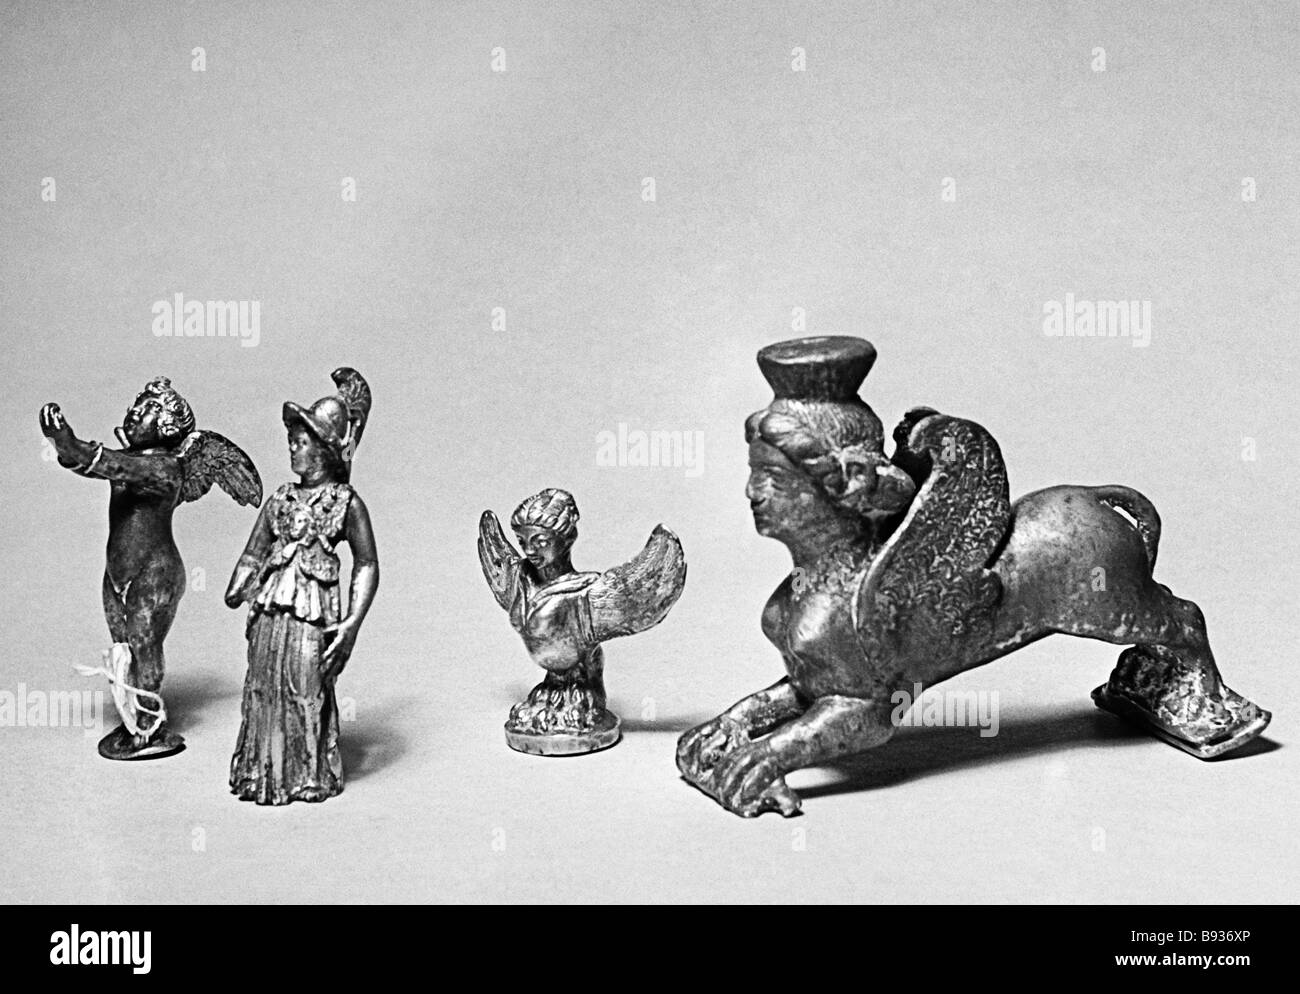 Silver and gilded figurines of Parthian gods discovered during the excavations of Parthia s capital Nisa on the Stock Photo